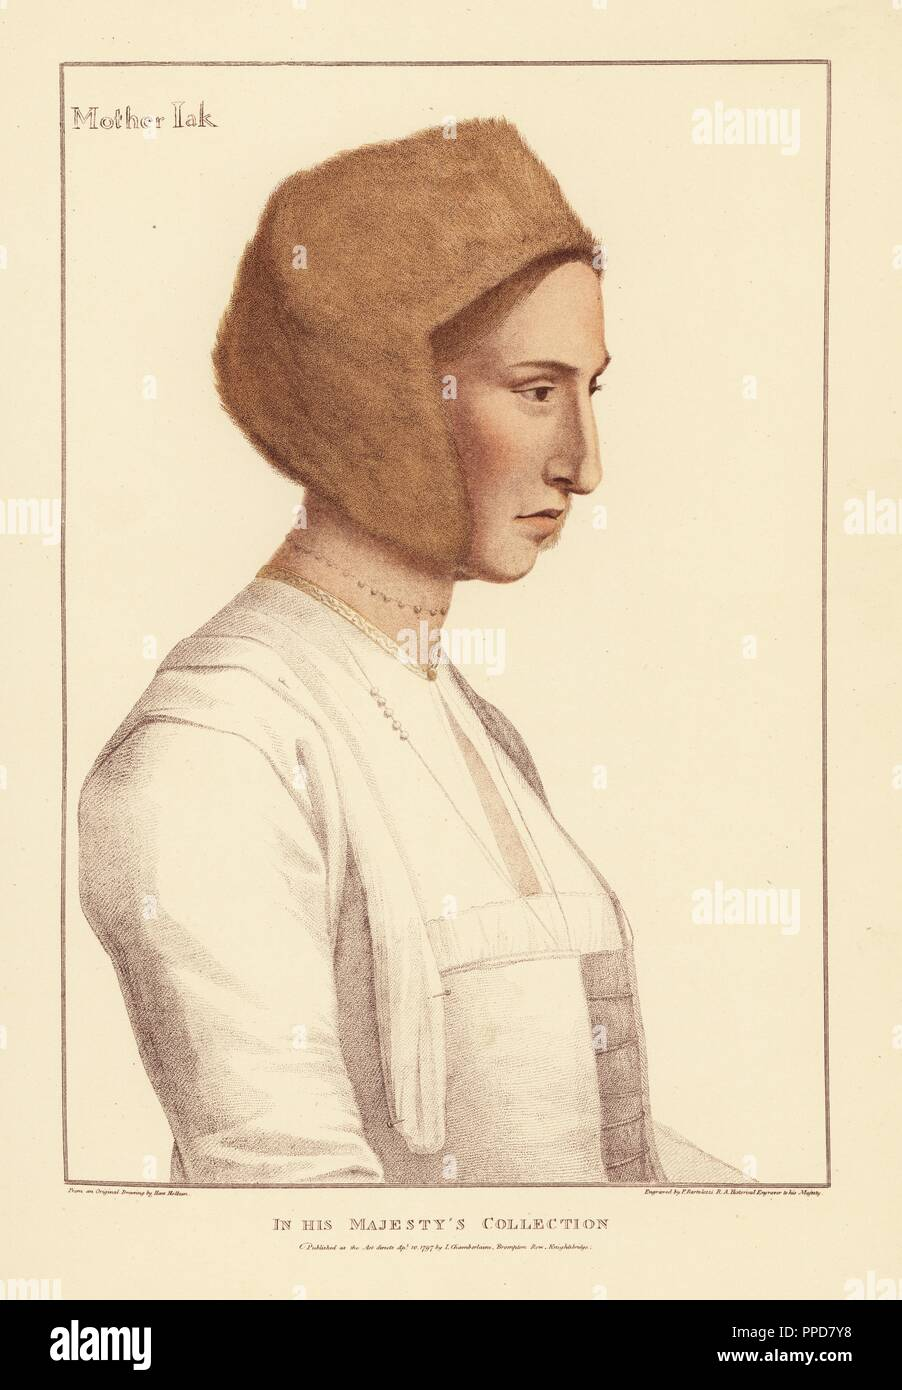 Margaret Clement (née Giggs), foster daughter of Thomas More, wife to John Clement, tutor to the More children. (Mislabeled as Mother Jak, nurse to King Edward VI.) Handcoloured copperplate engraving by Francis Bartolozzi after Hans Holbein from Facsimiles of Original Drawings by Hans Holbein, Hamilton, Adams, London, 1884. - Stock Image